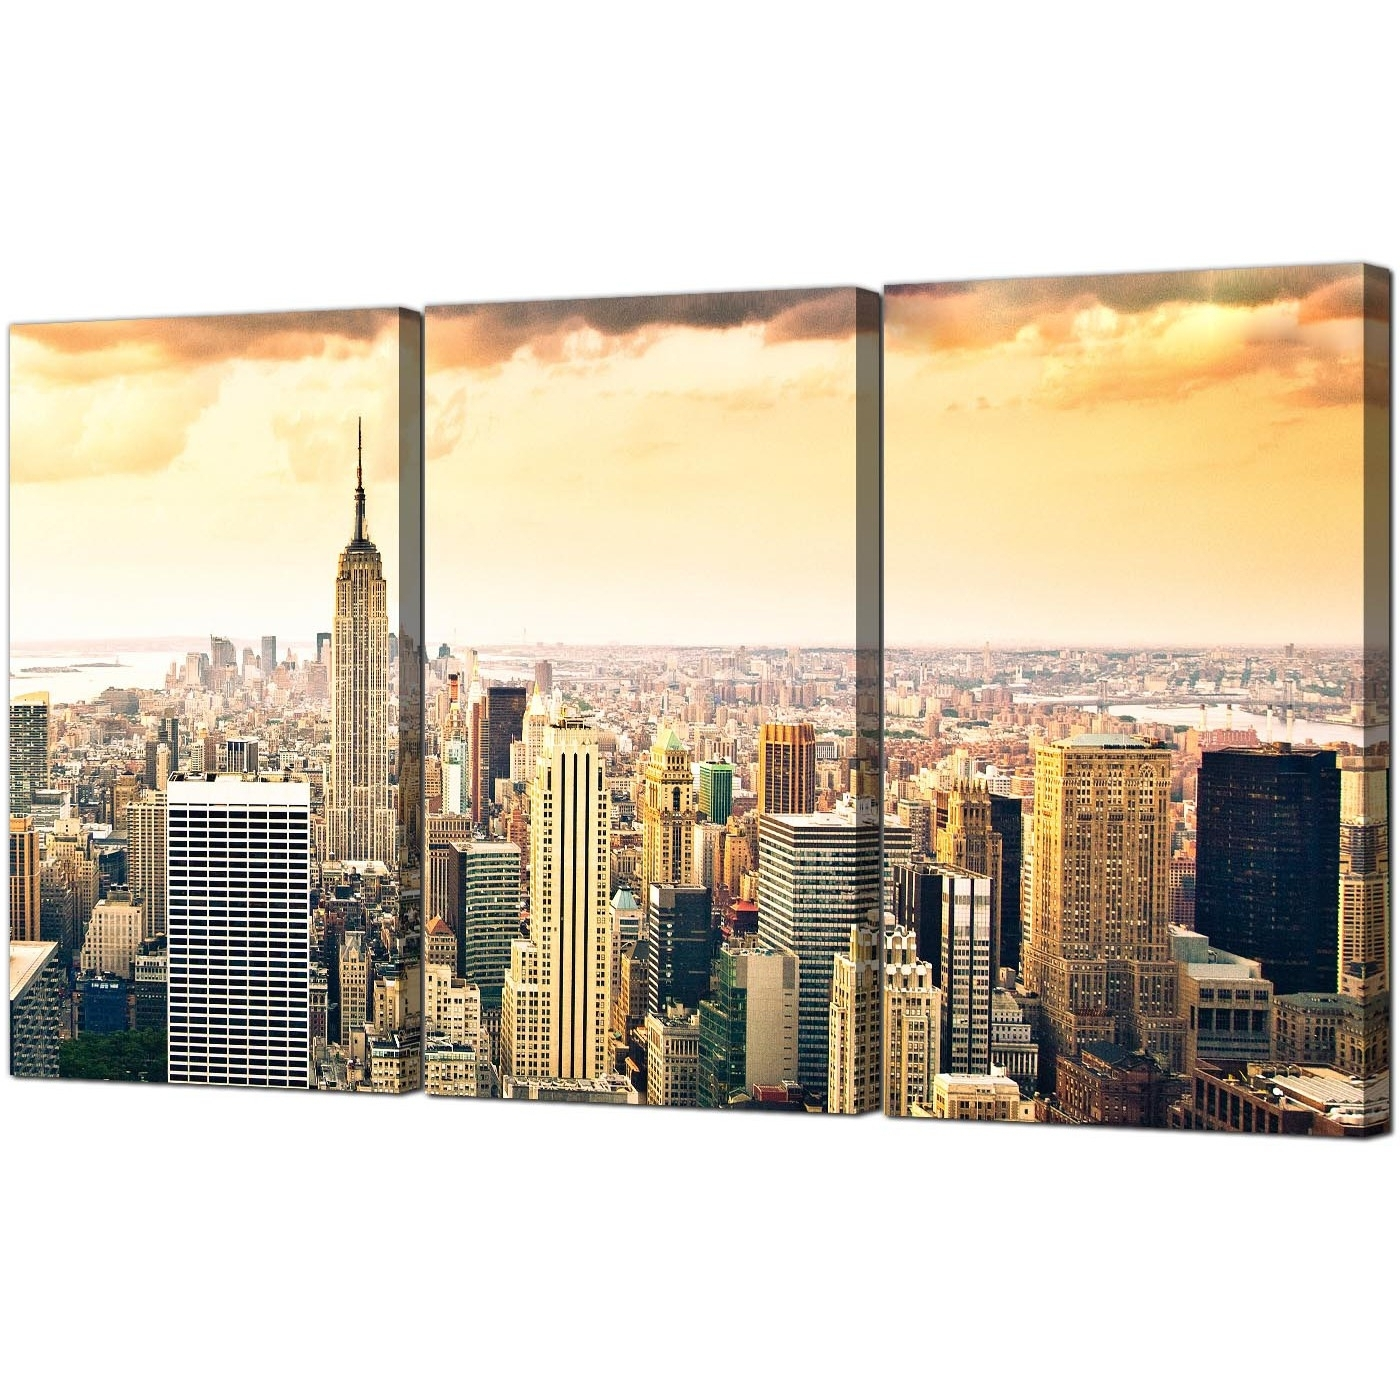 New York City Canvas Wall Art Regarding Most Current Extra Large New York Skyline Canvas Pictures 3 Panel For Your Bedroom (View 10 of 15)